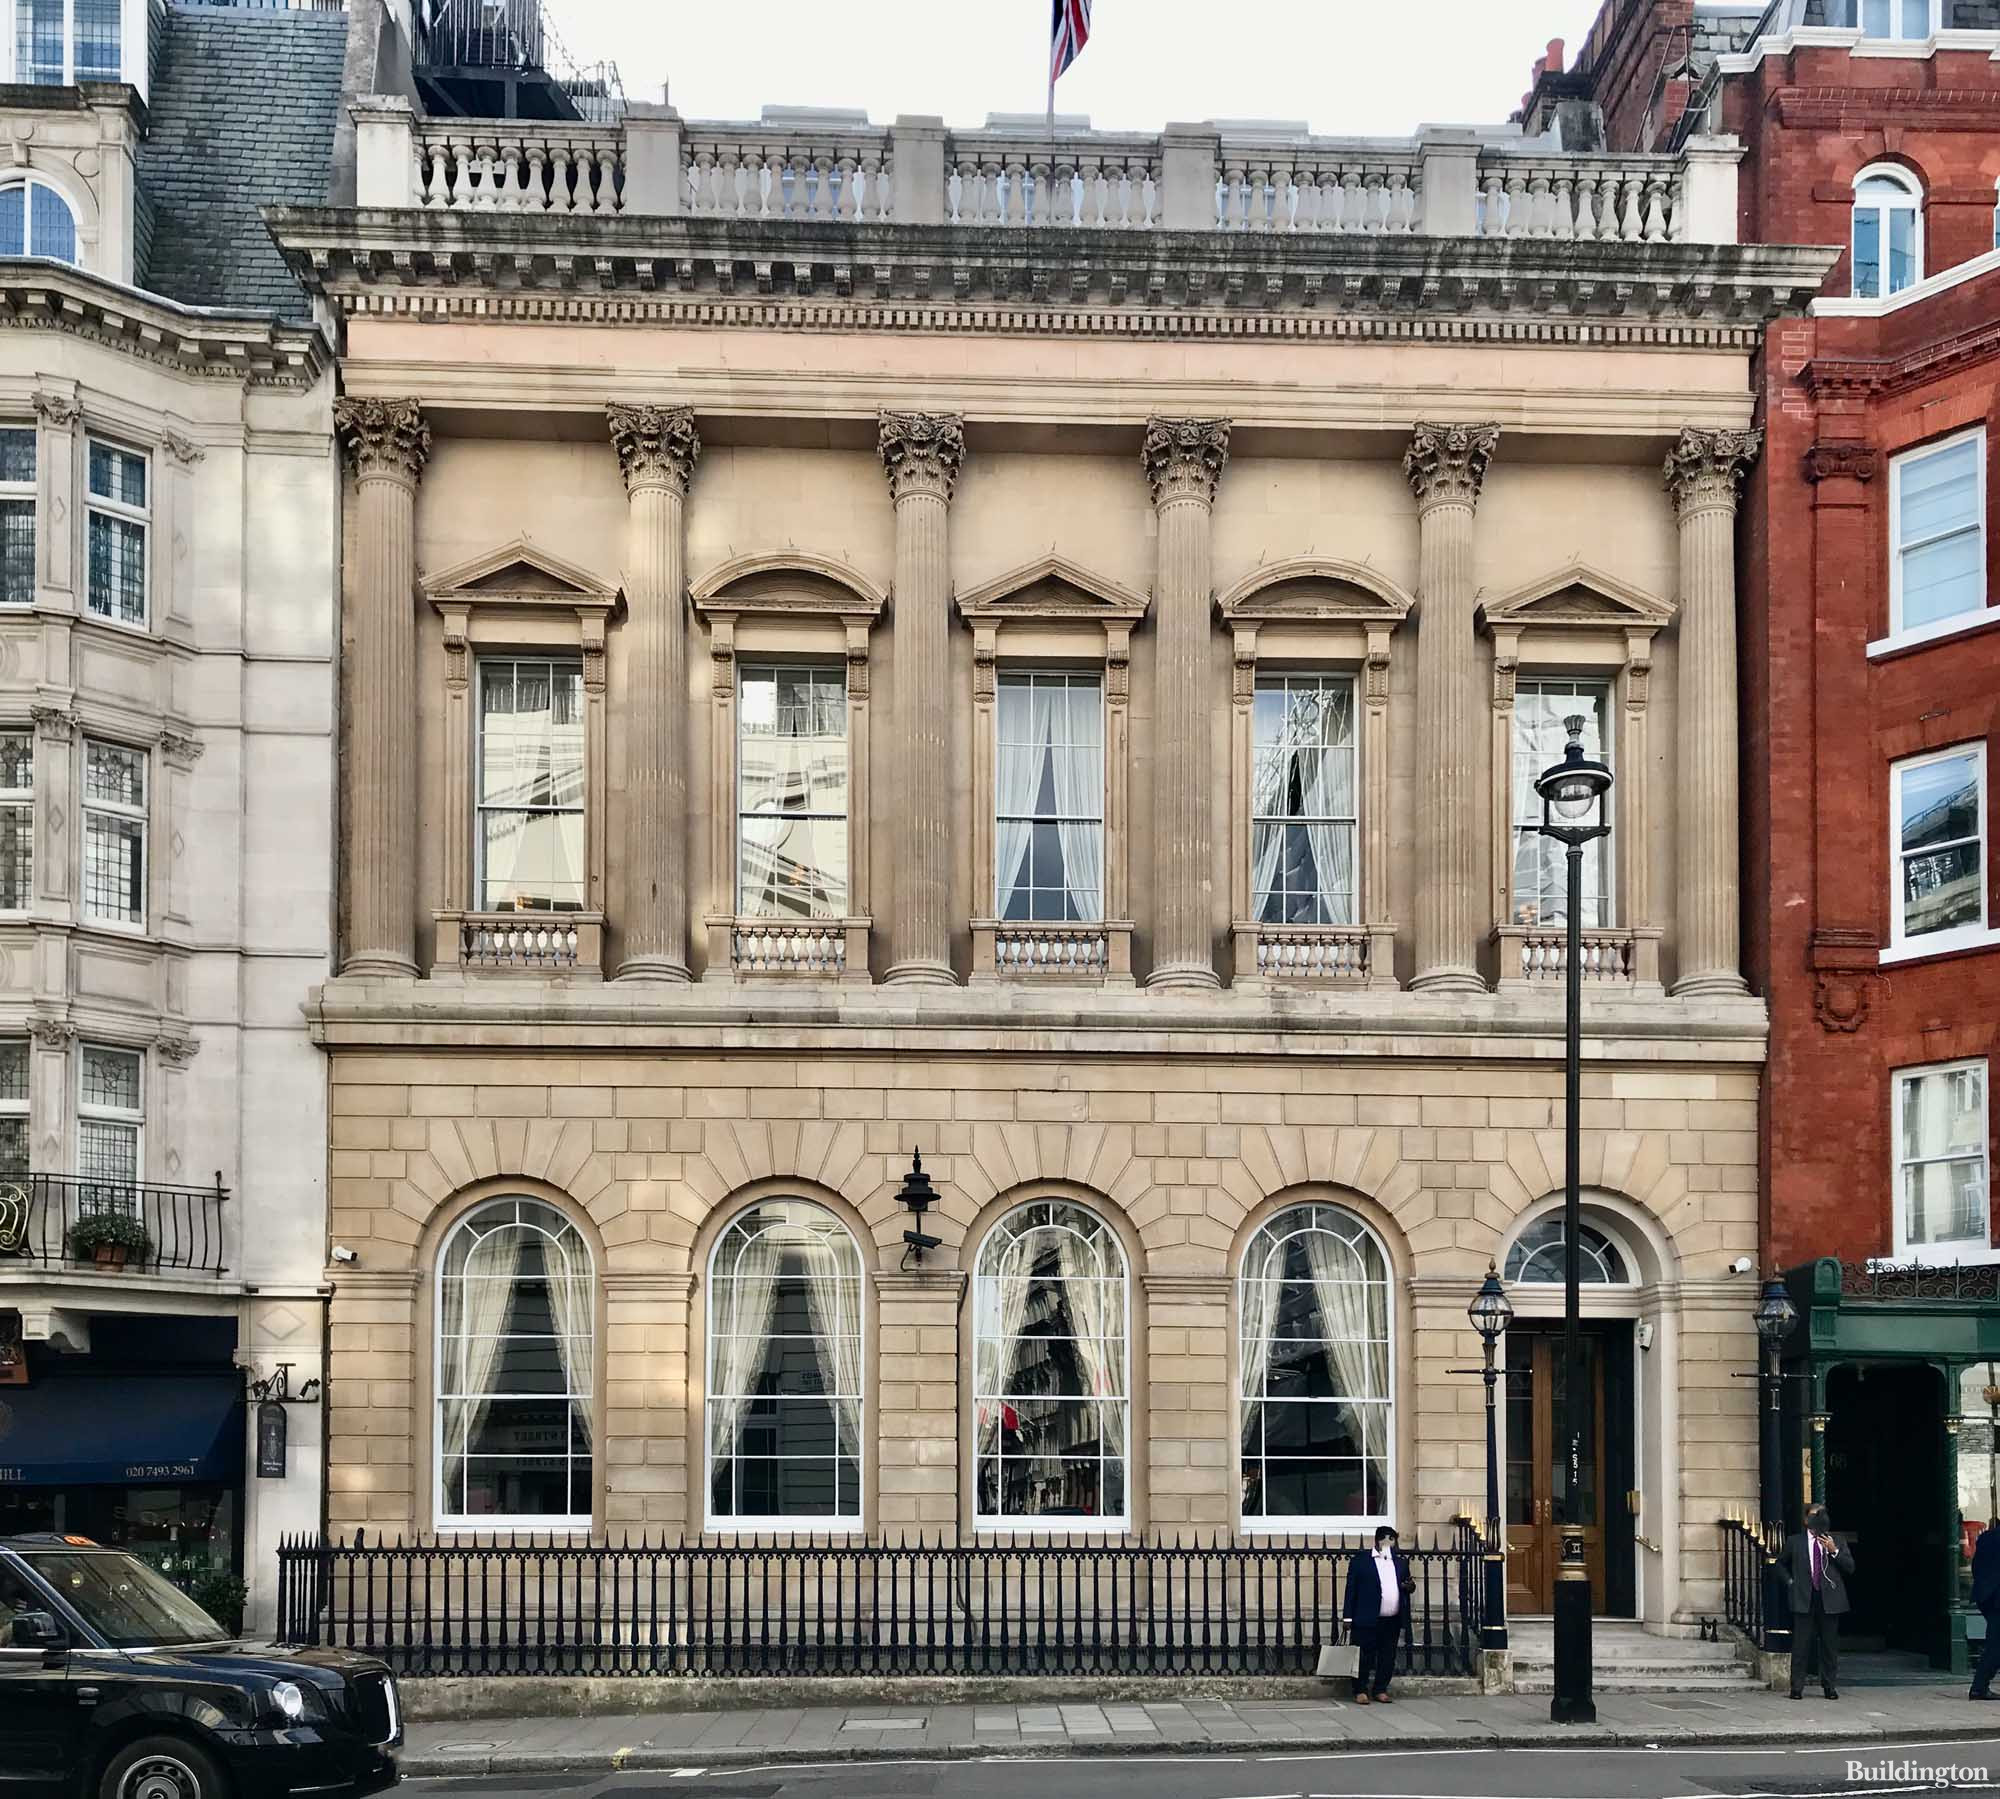 69 St James's Street is home to members-only Carlton Club.